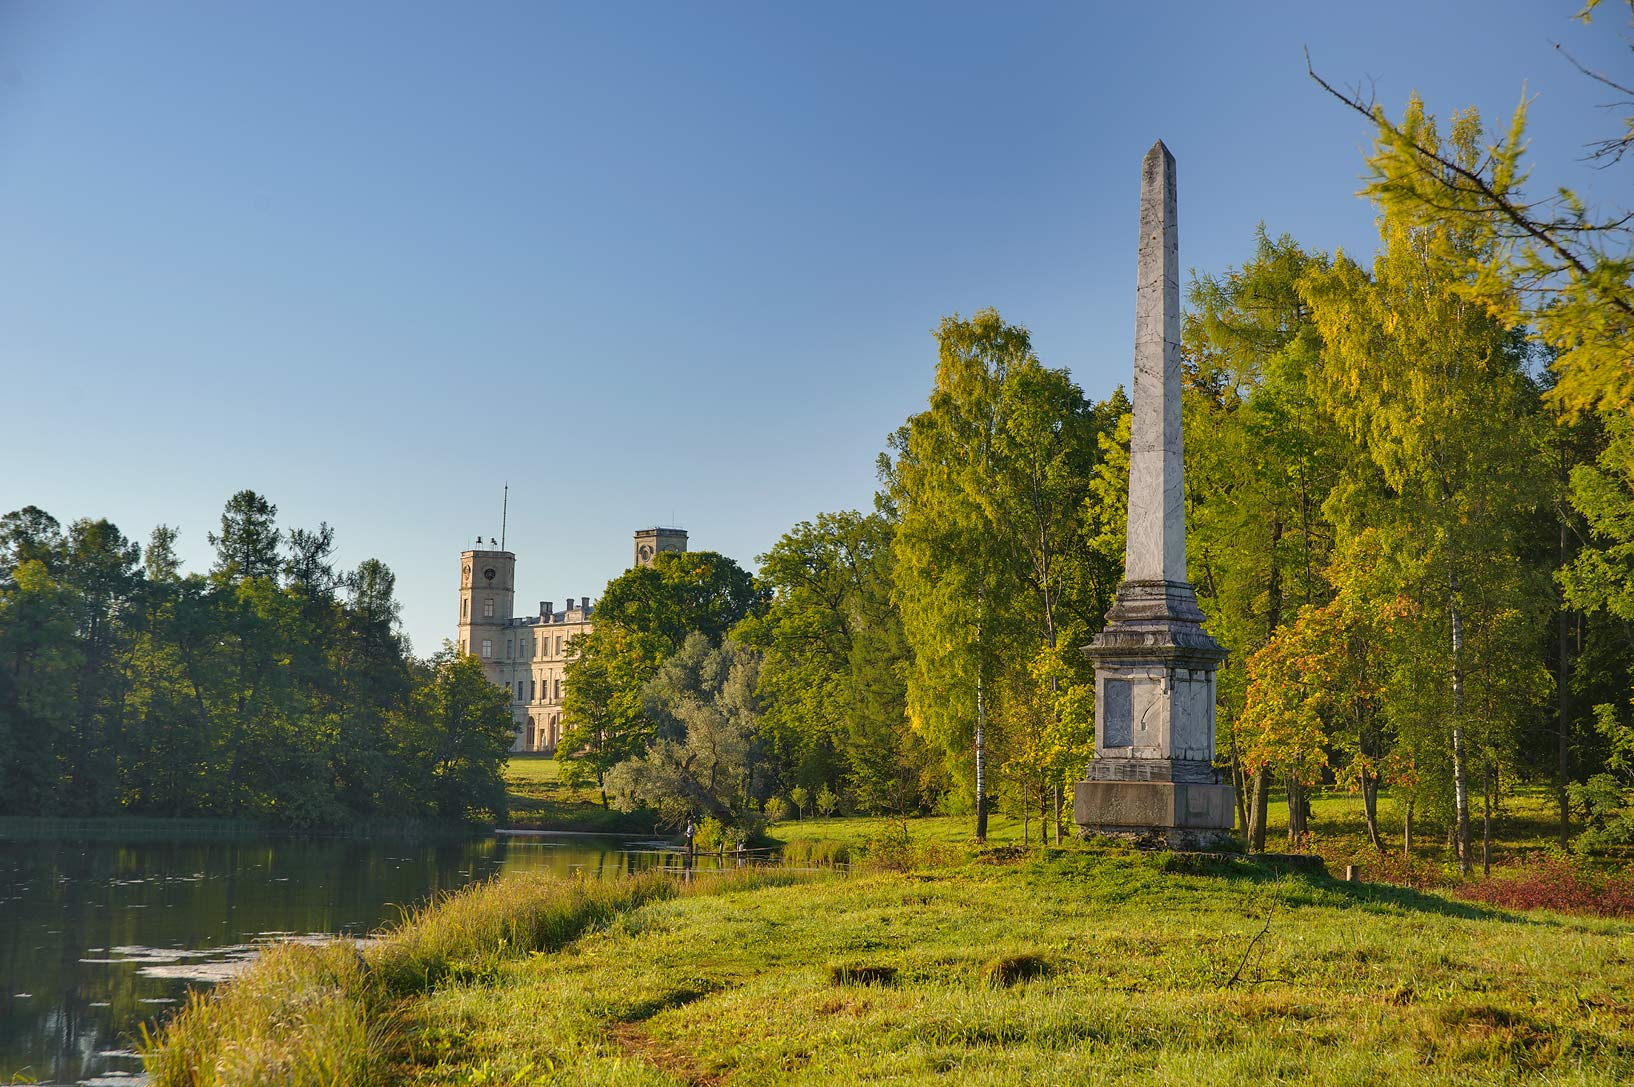 Chesma memorial column in Gatchina Park. Gatchina, a suburb of St.Petersburg, Russia